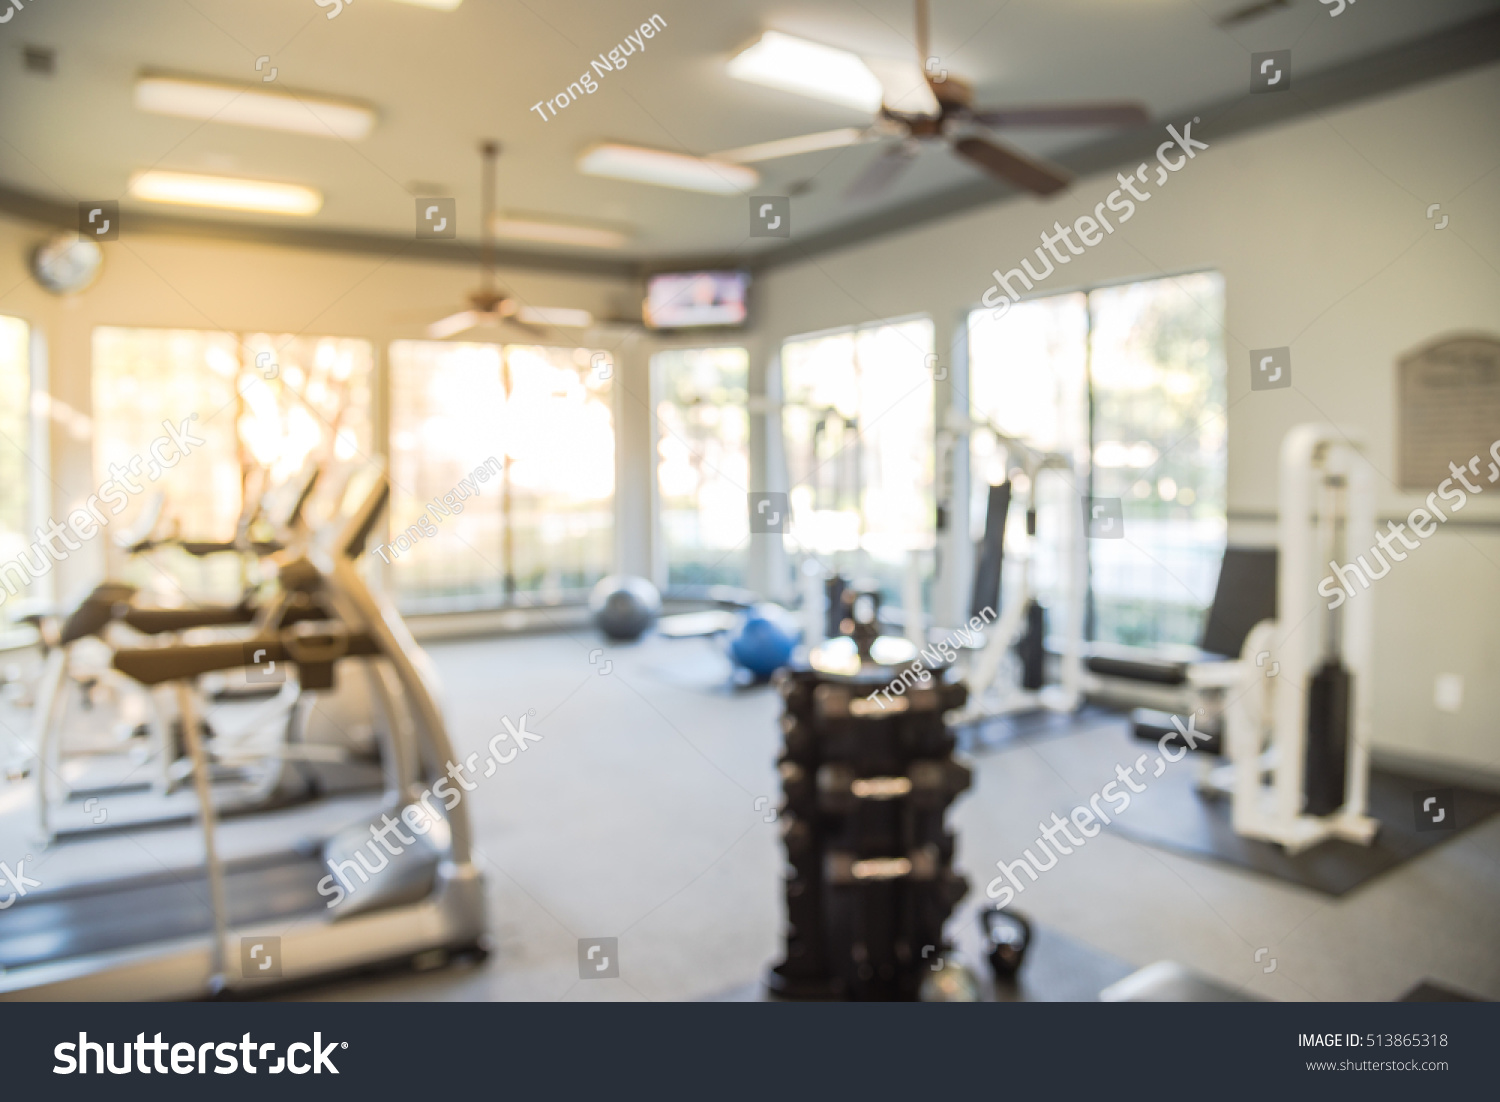 Blurred Image Fitness Center Cardio Machines Stock Photo Edit Now